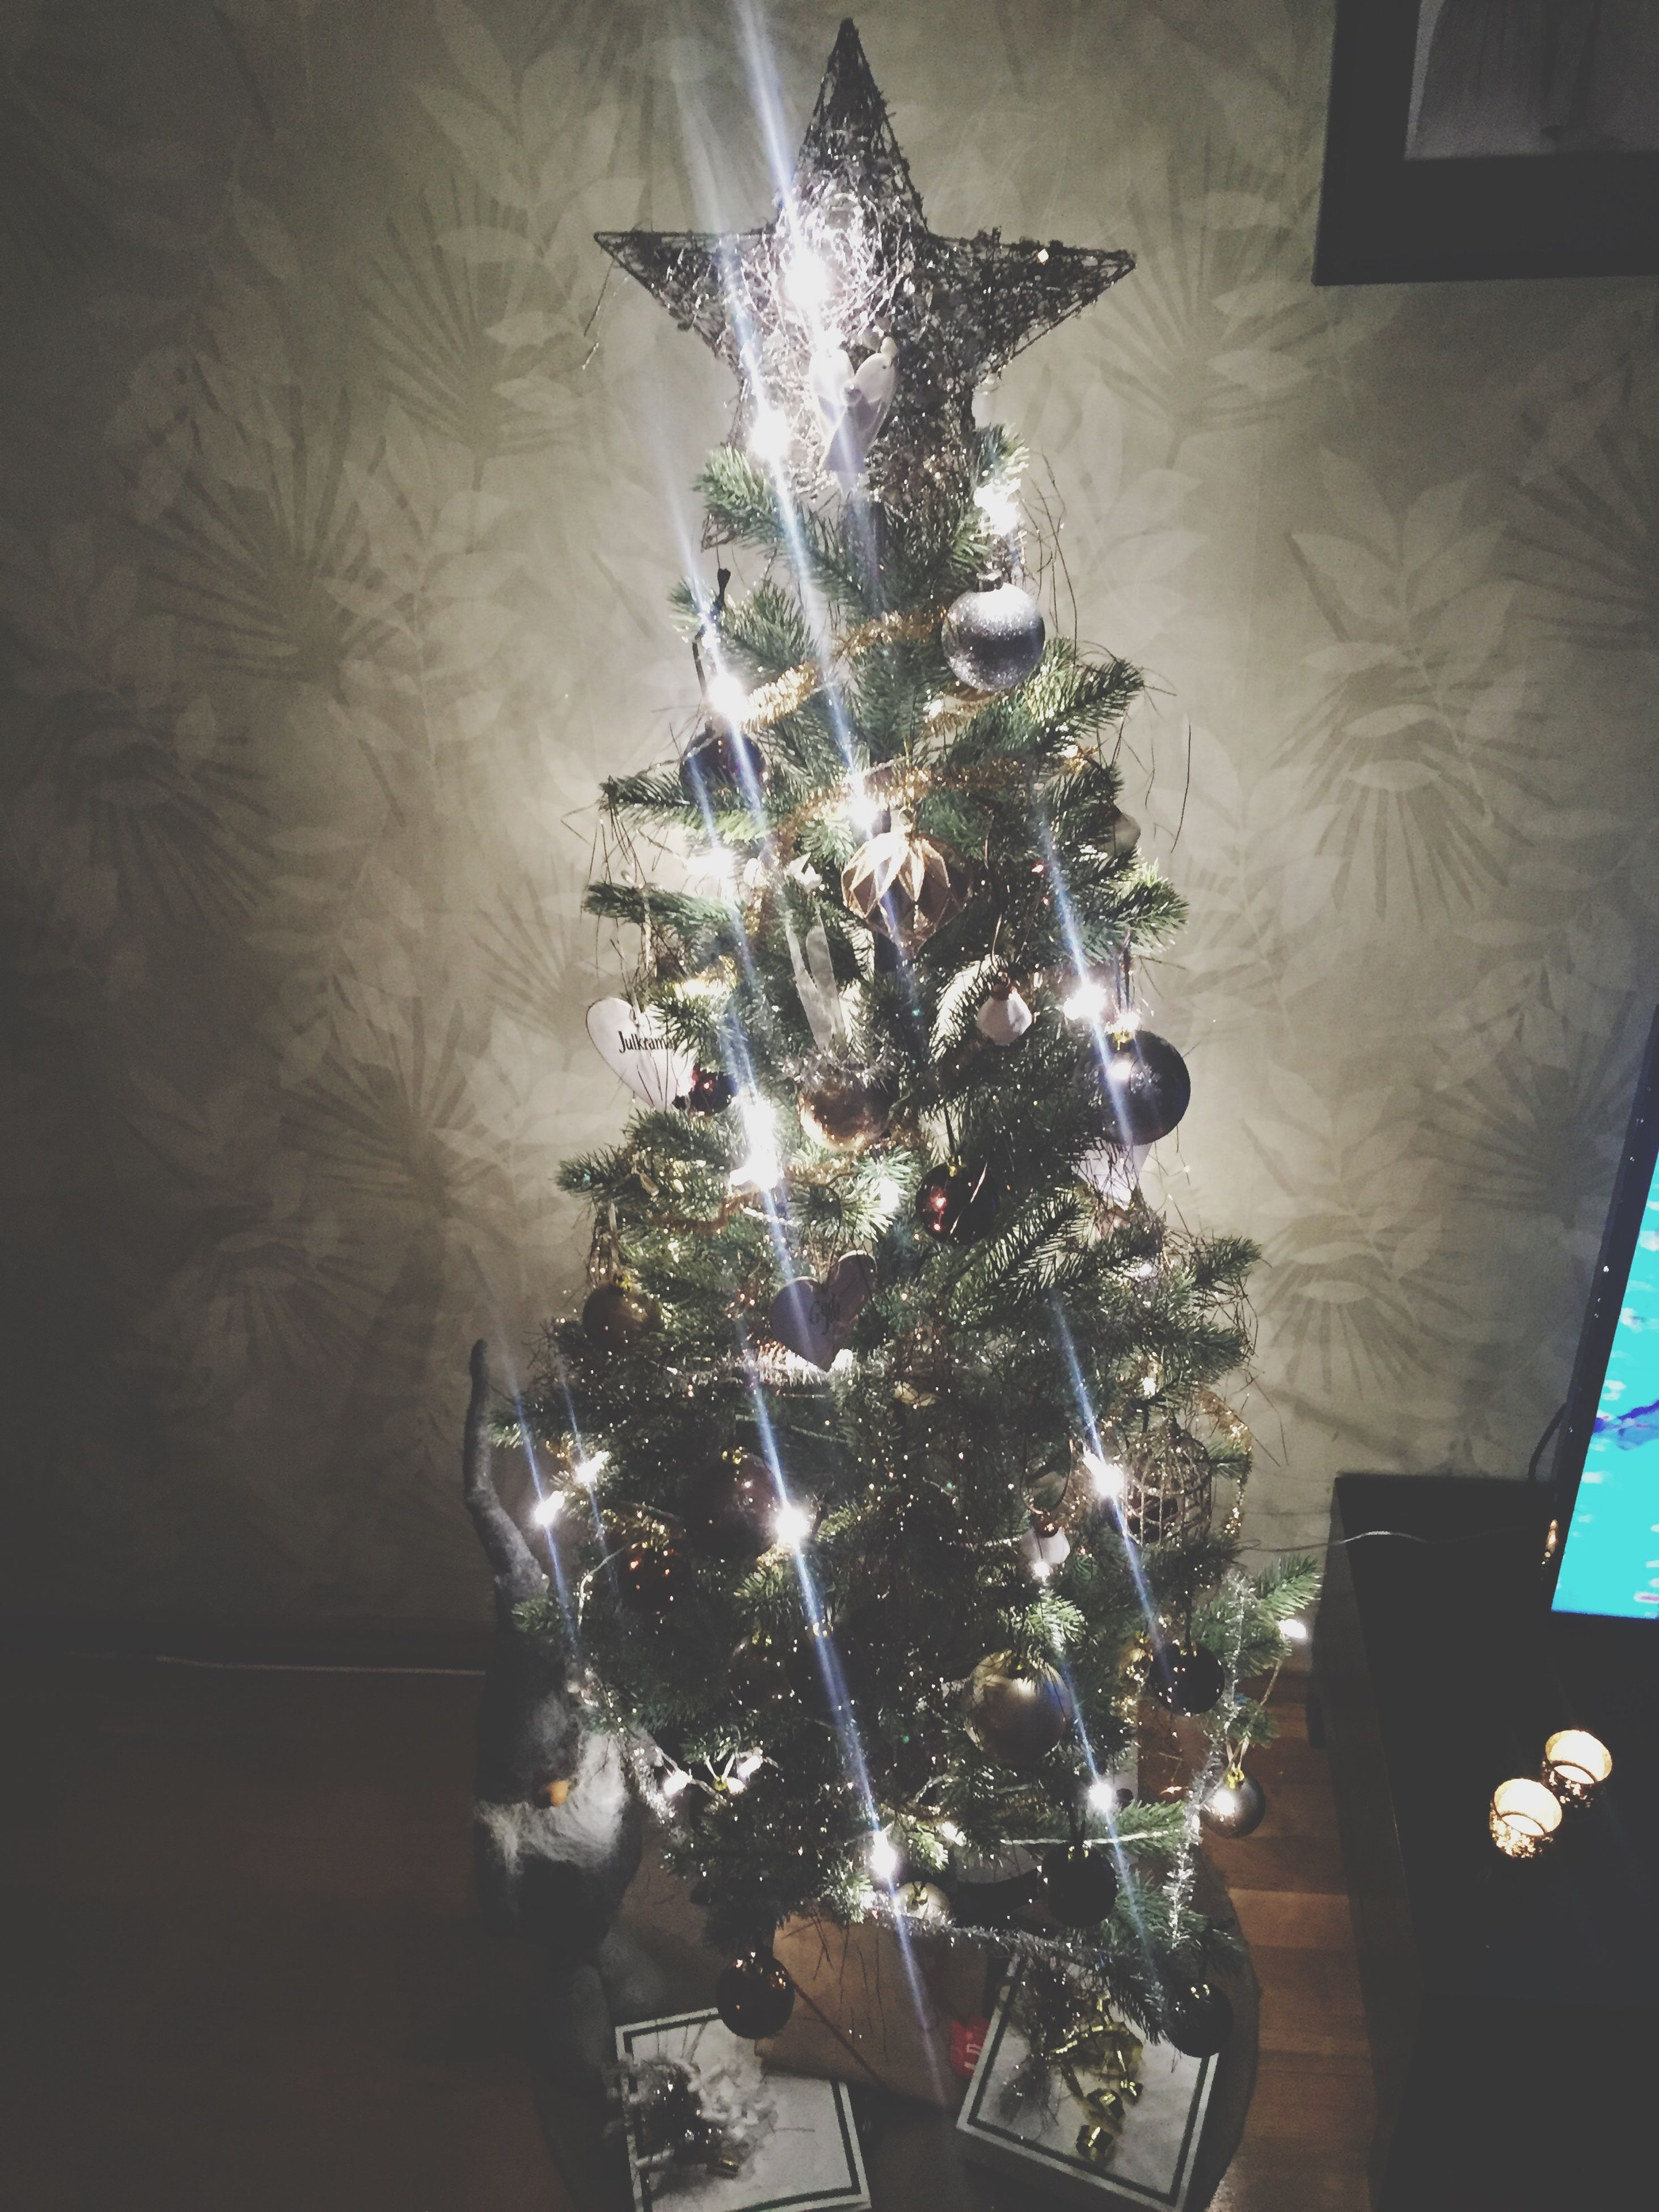 indoors, illuminated, lighting equipment, decoration, hanging, ceiling, table, light - natural phenomenon, home interior, night, high angle view, decor, low angle view, no people, celebration, chandelier, christmas decoration, large group of objects, electric light, christmas